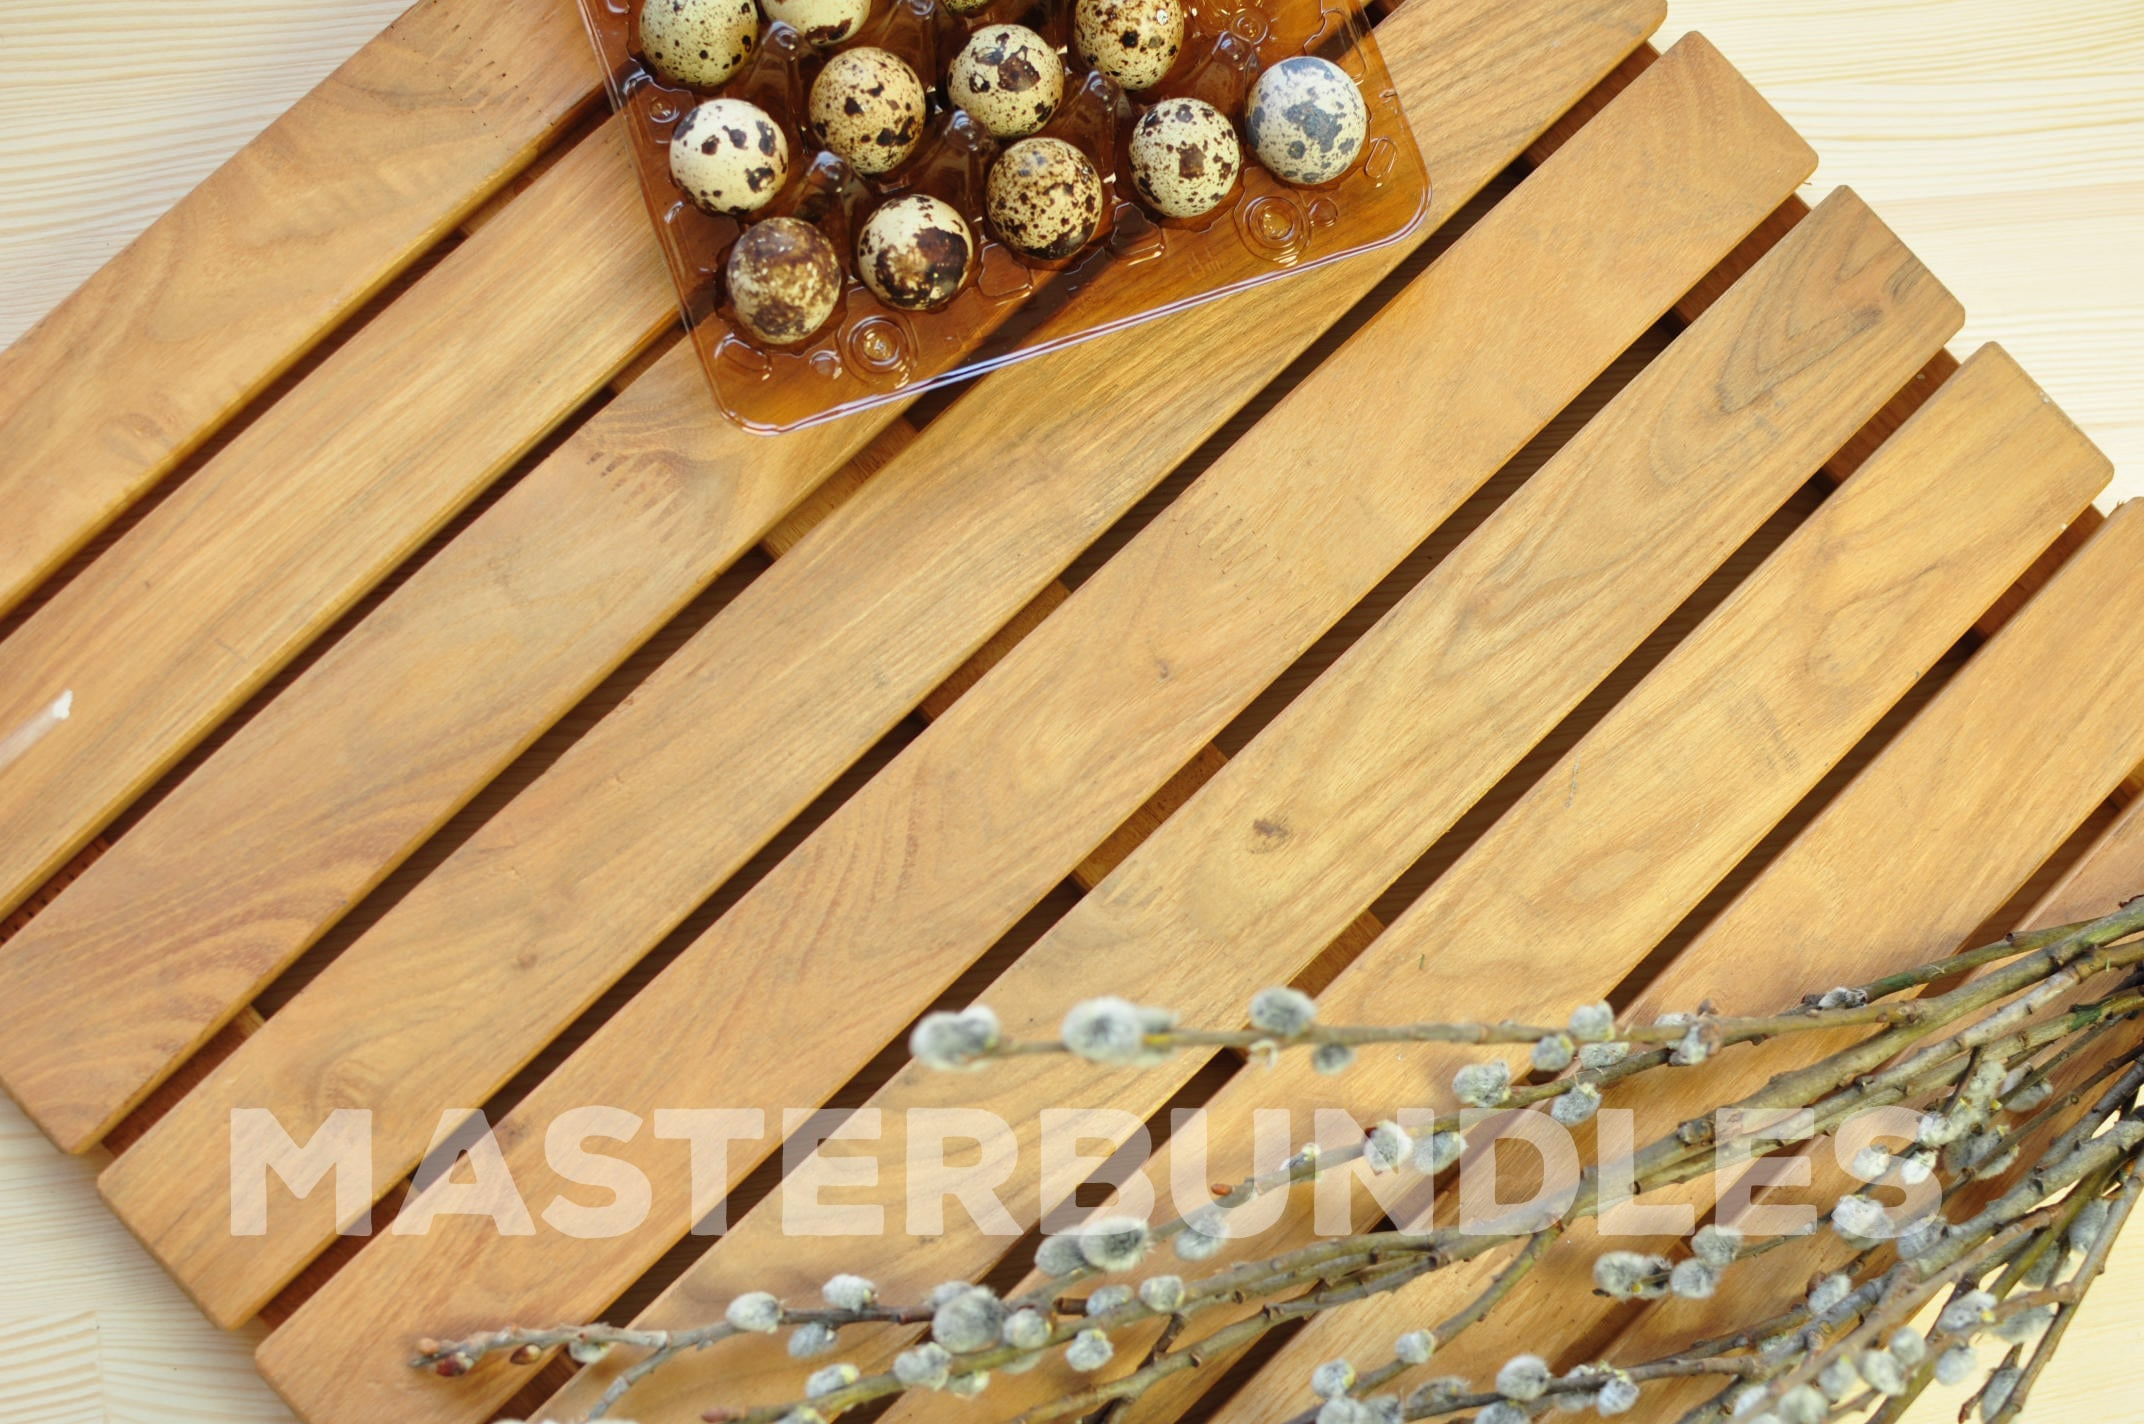 Quail eggs and pussy willow on a wooden surface.